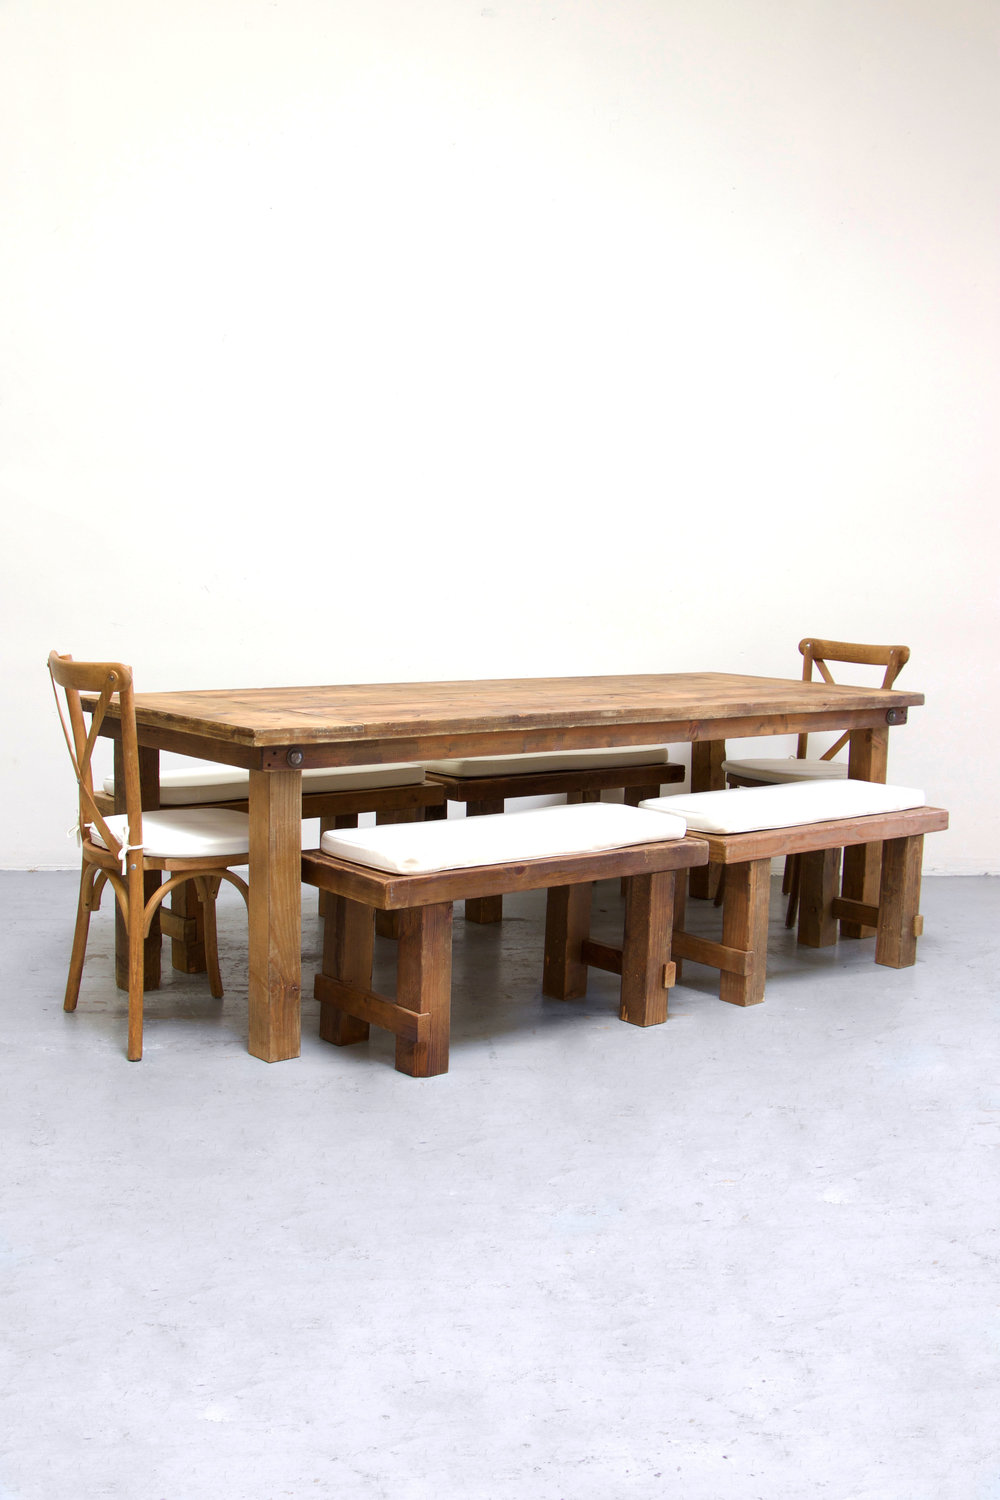 1 Honey Brown Farm Table w/ 4 Short Benches & 2 Cross-Back Chairs $160